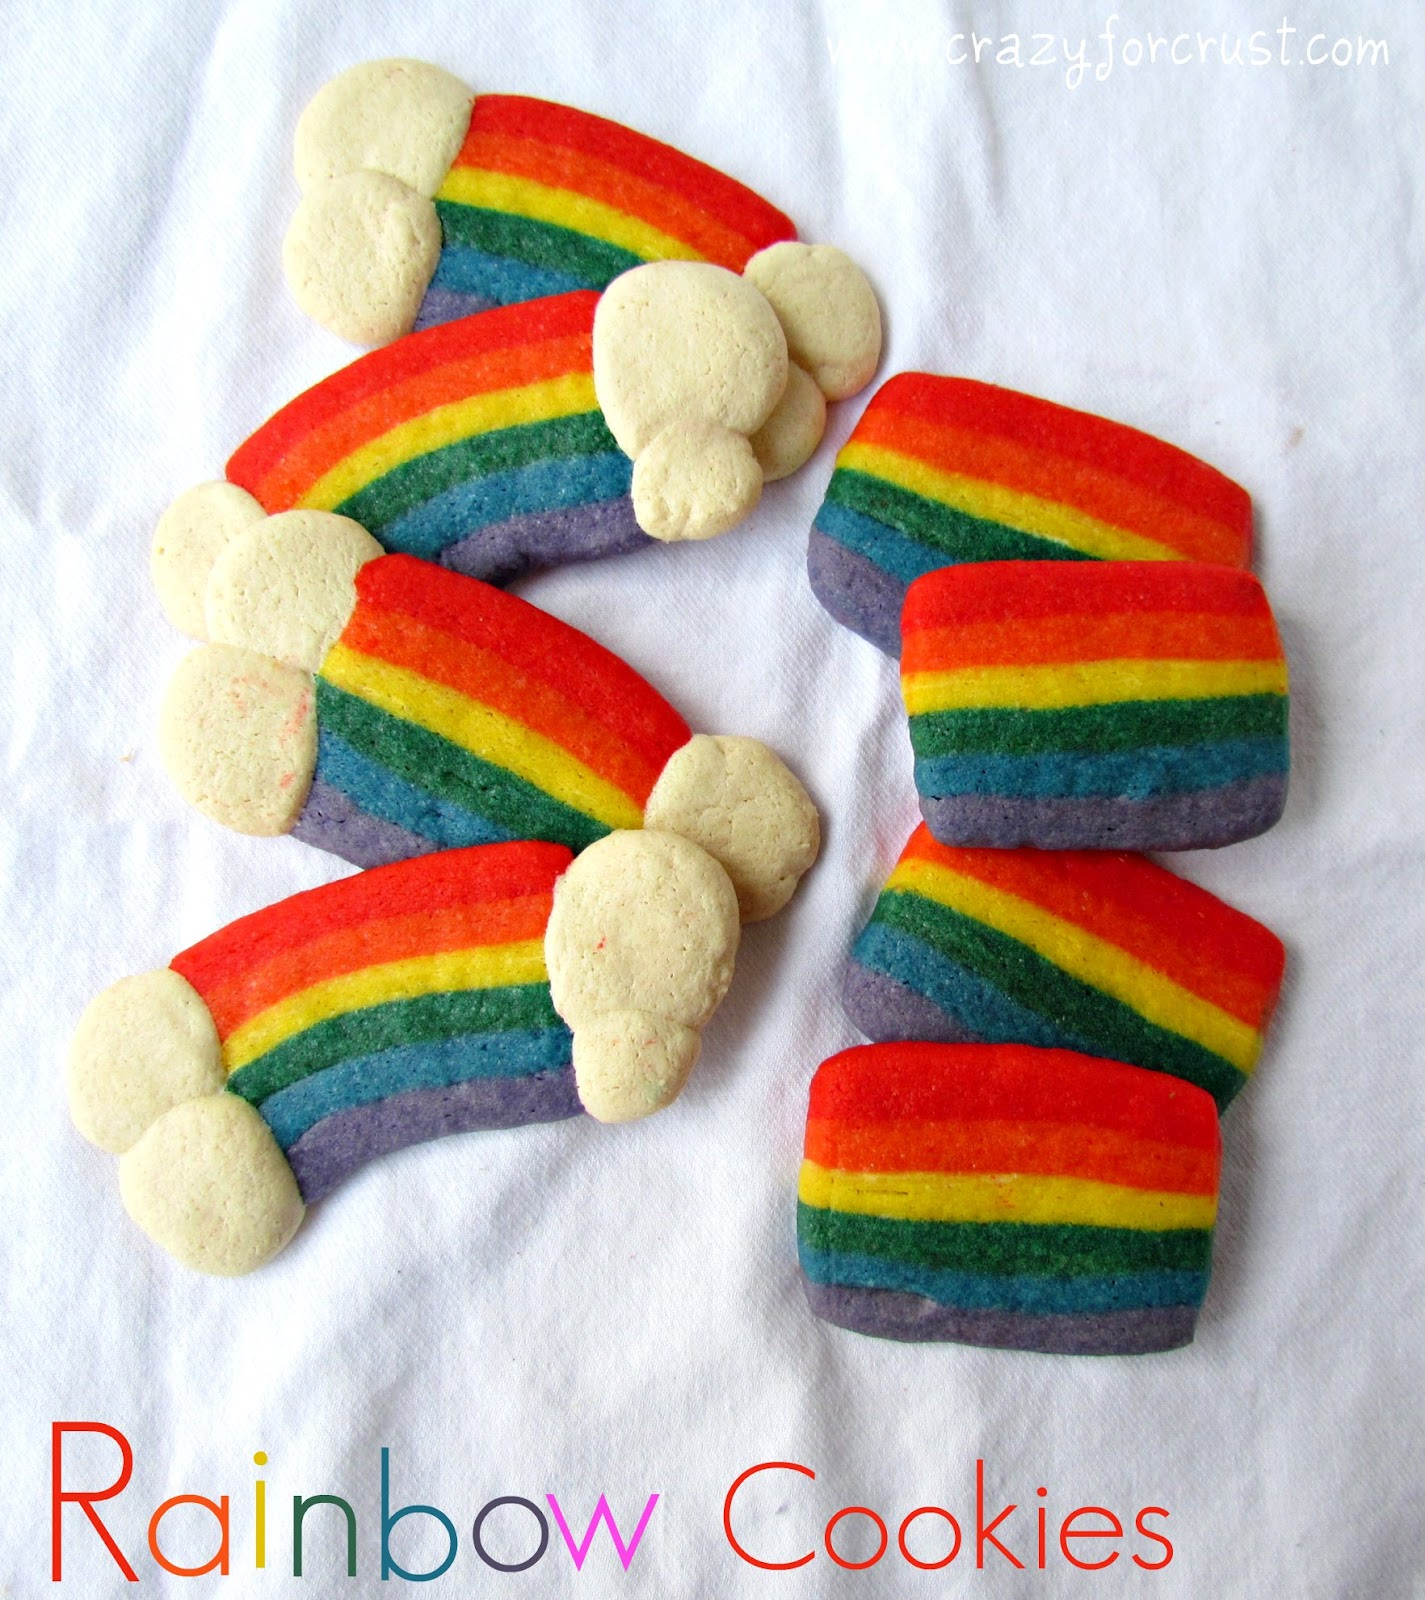 Rainbow Cookies {Slice and Bake} - Crazy for Crust